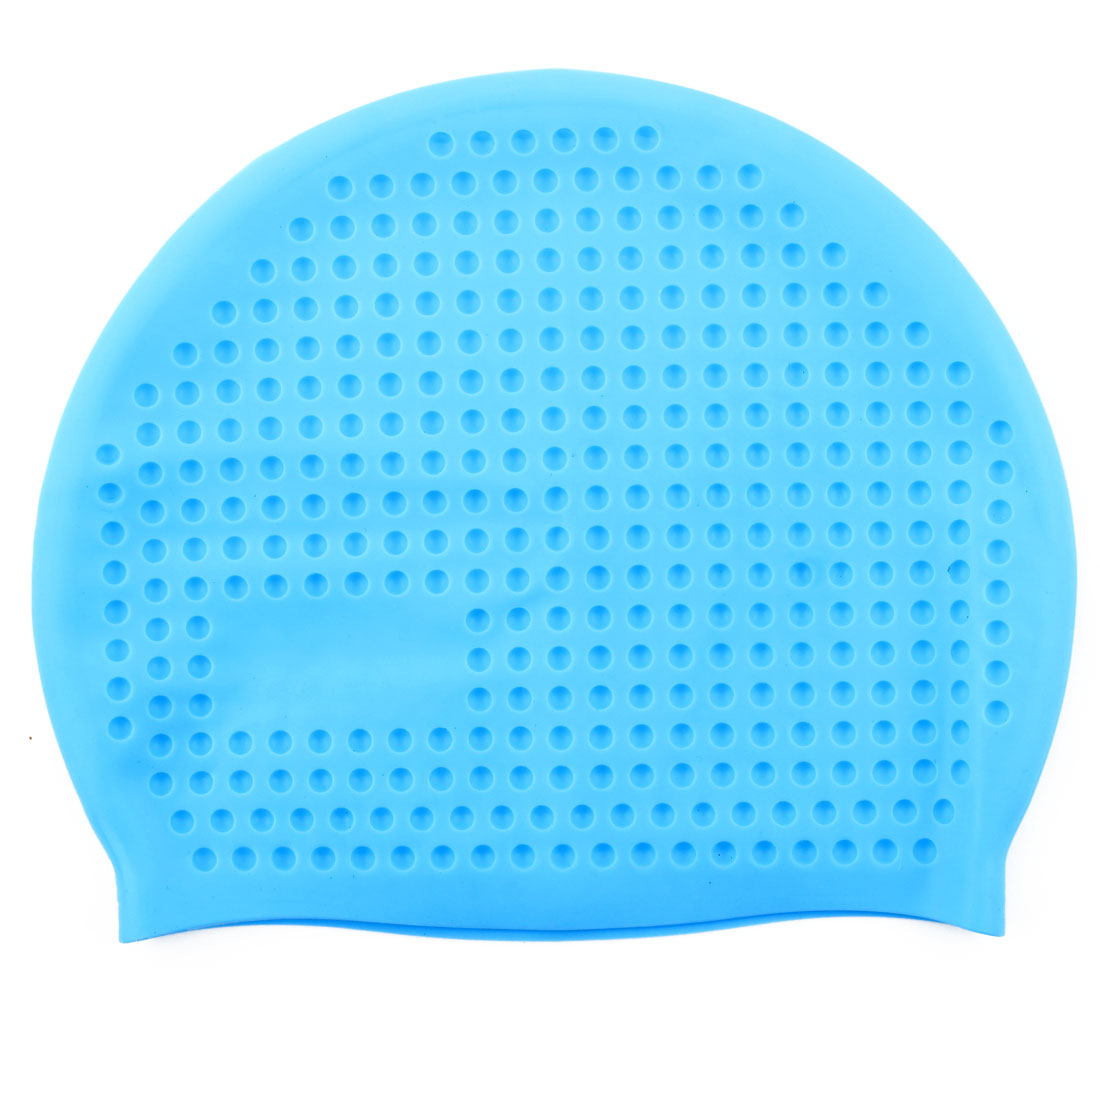 Adult Silicone Dome Shaped Water Resistant Elastic Swimming Cap Portable Bathing Hat Sky Blue